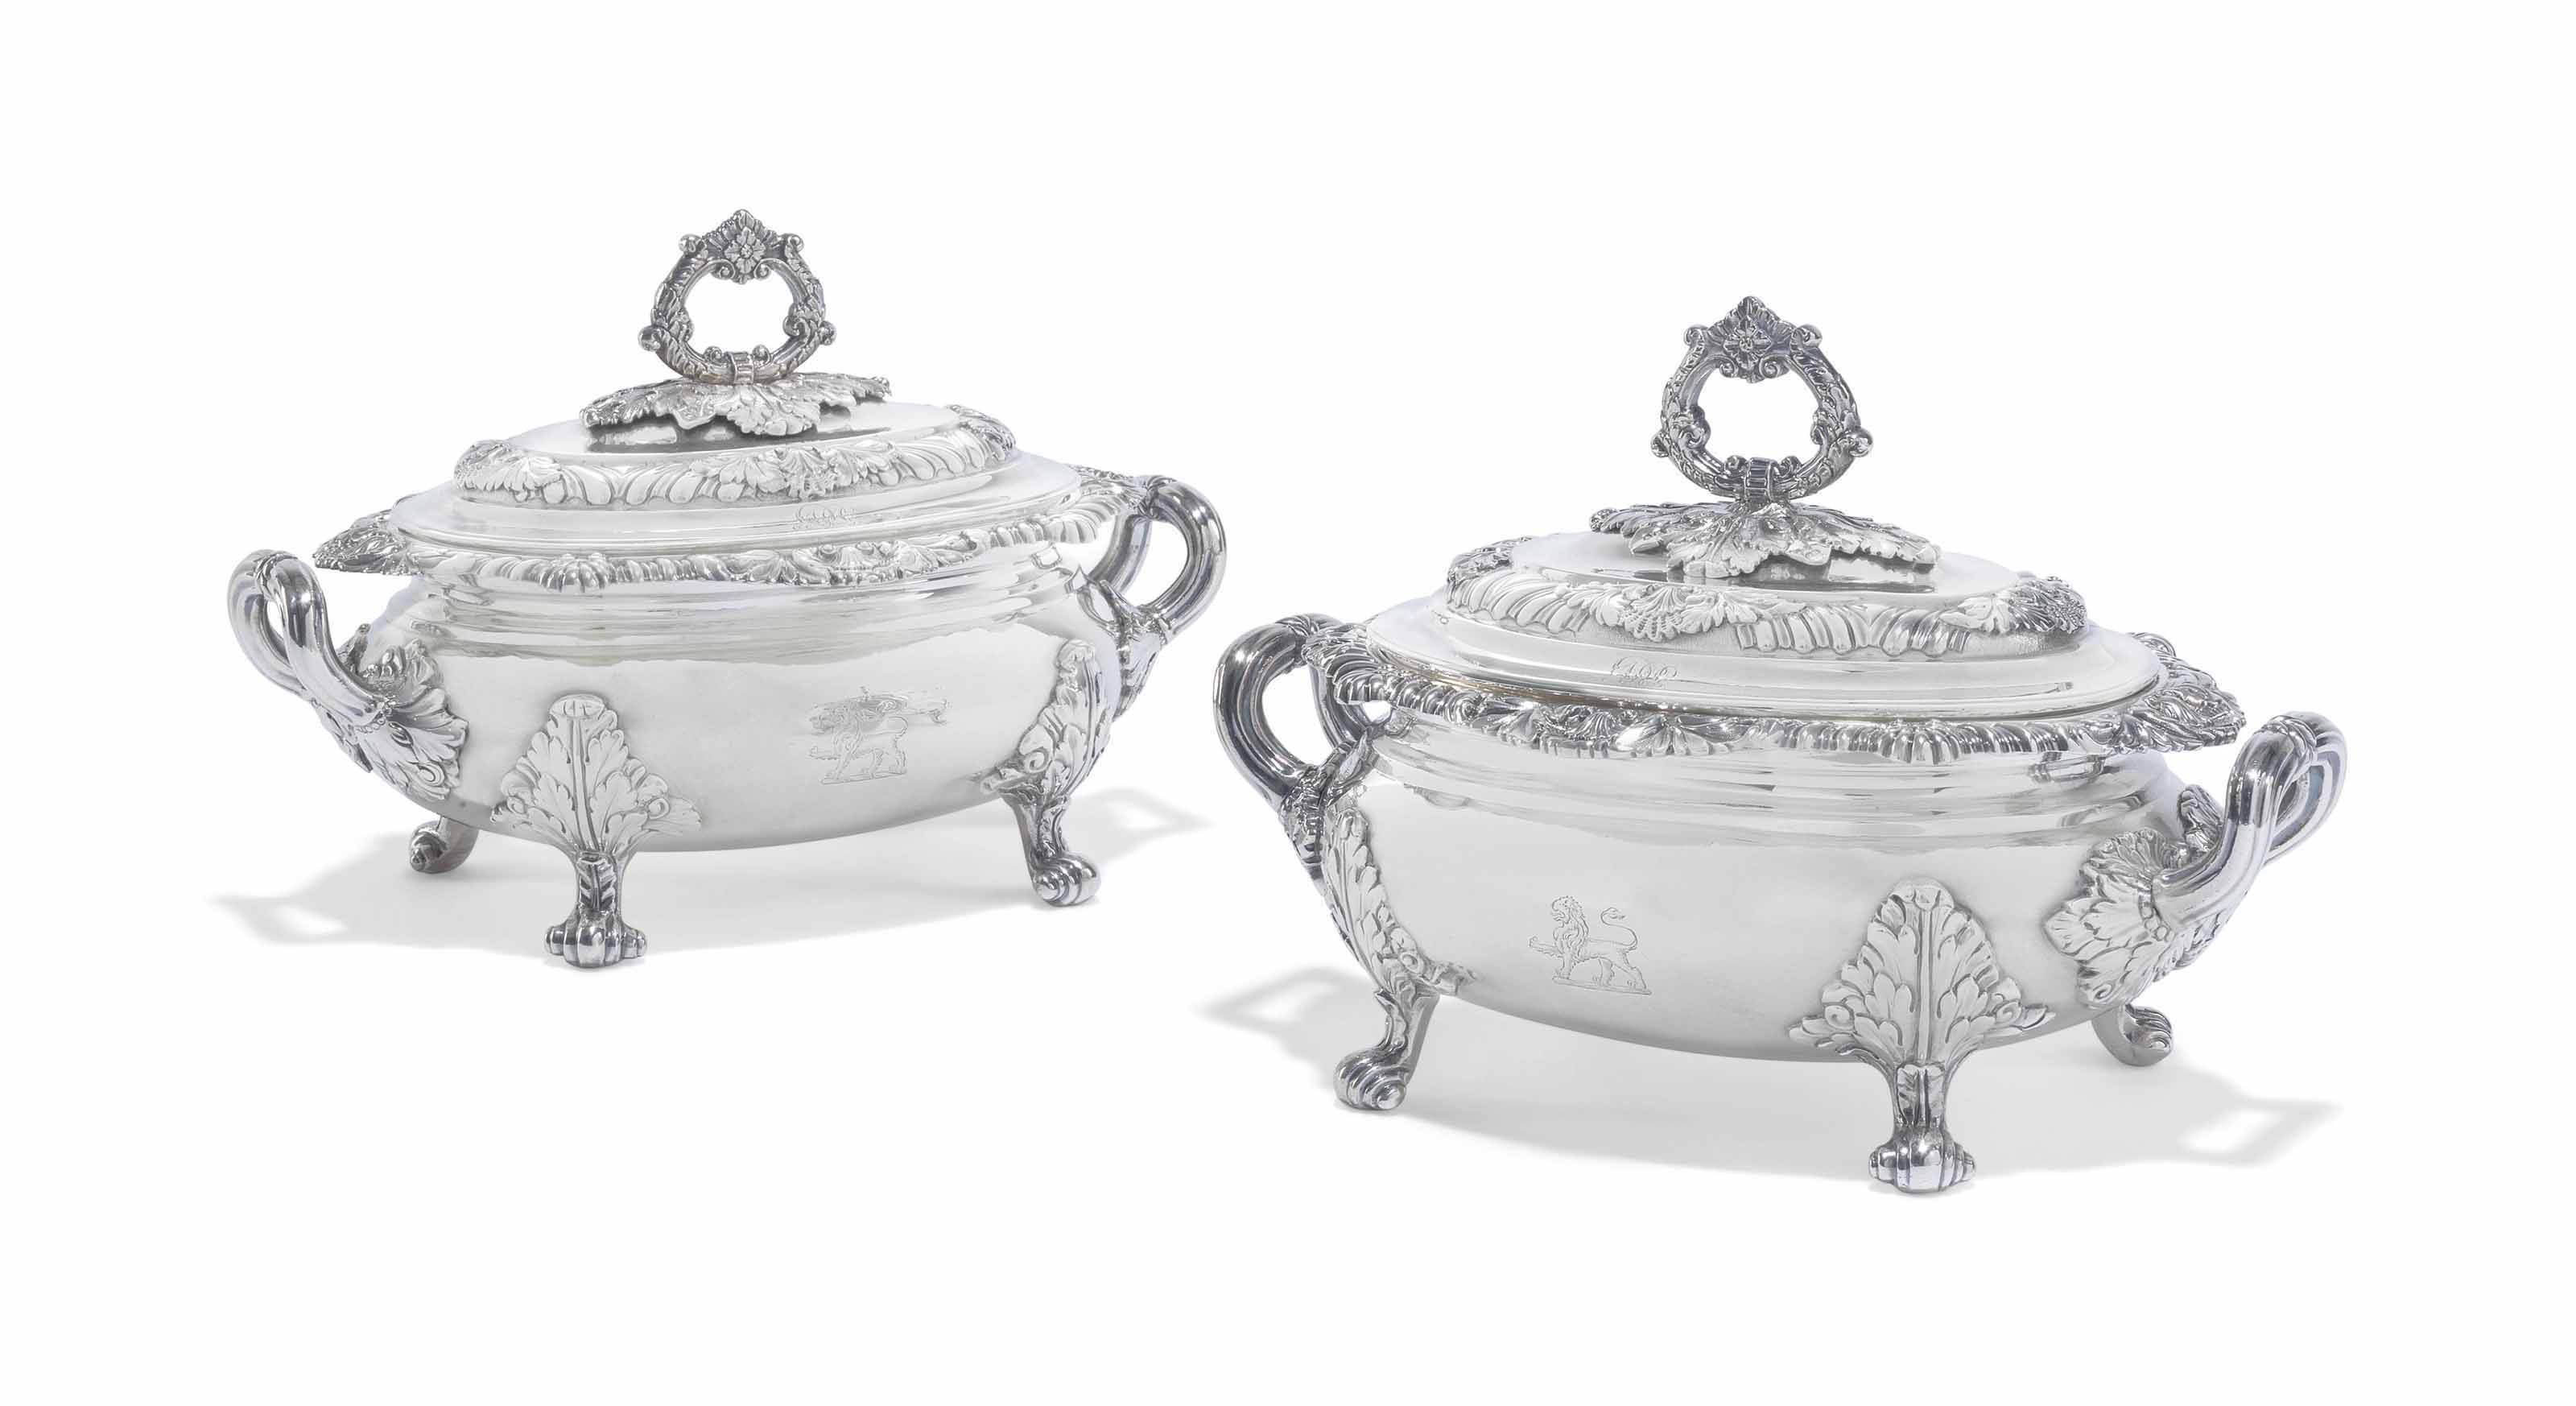 A PAIR OF GEORGE IV SILVER SAUCE-TUREENS AND COVERS